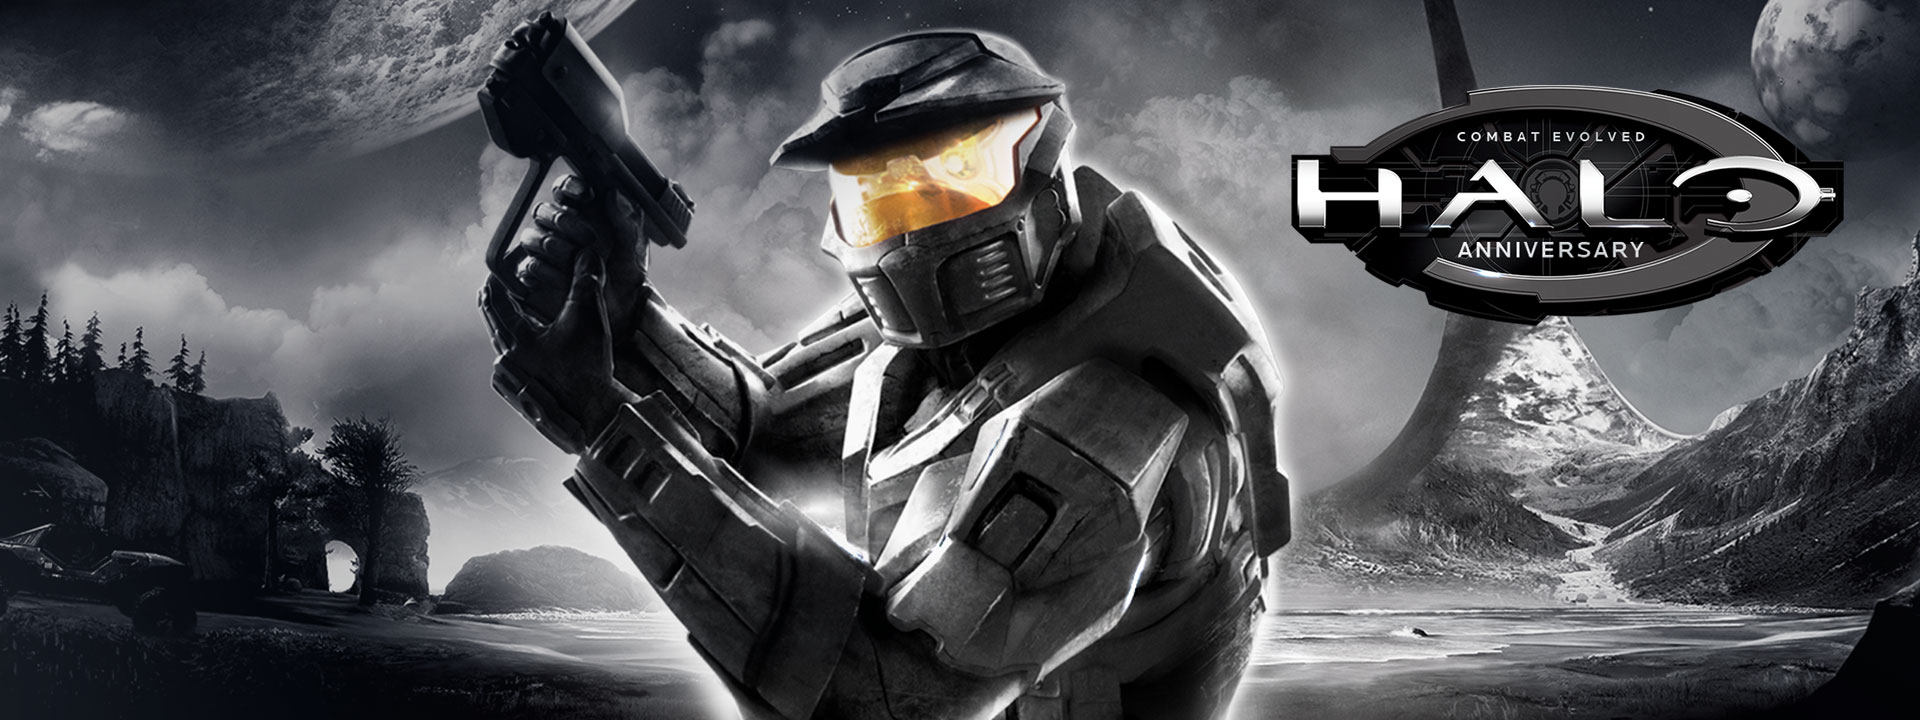 Halo Combat Evolved Anniversary, Master Chief points a gun against a black and white alien planet background